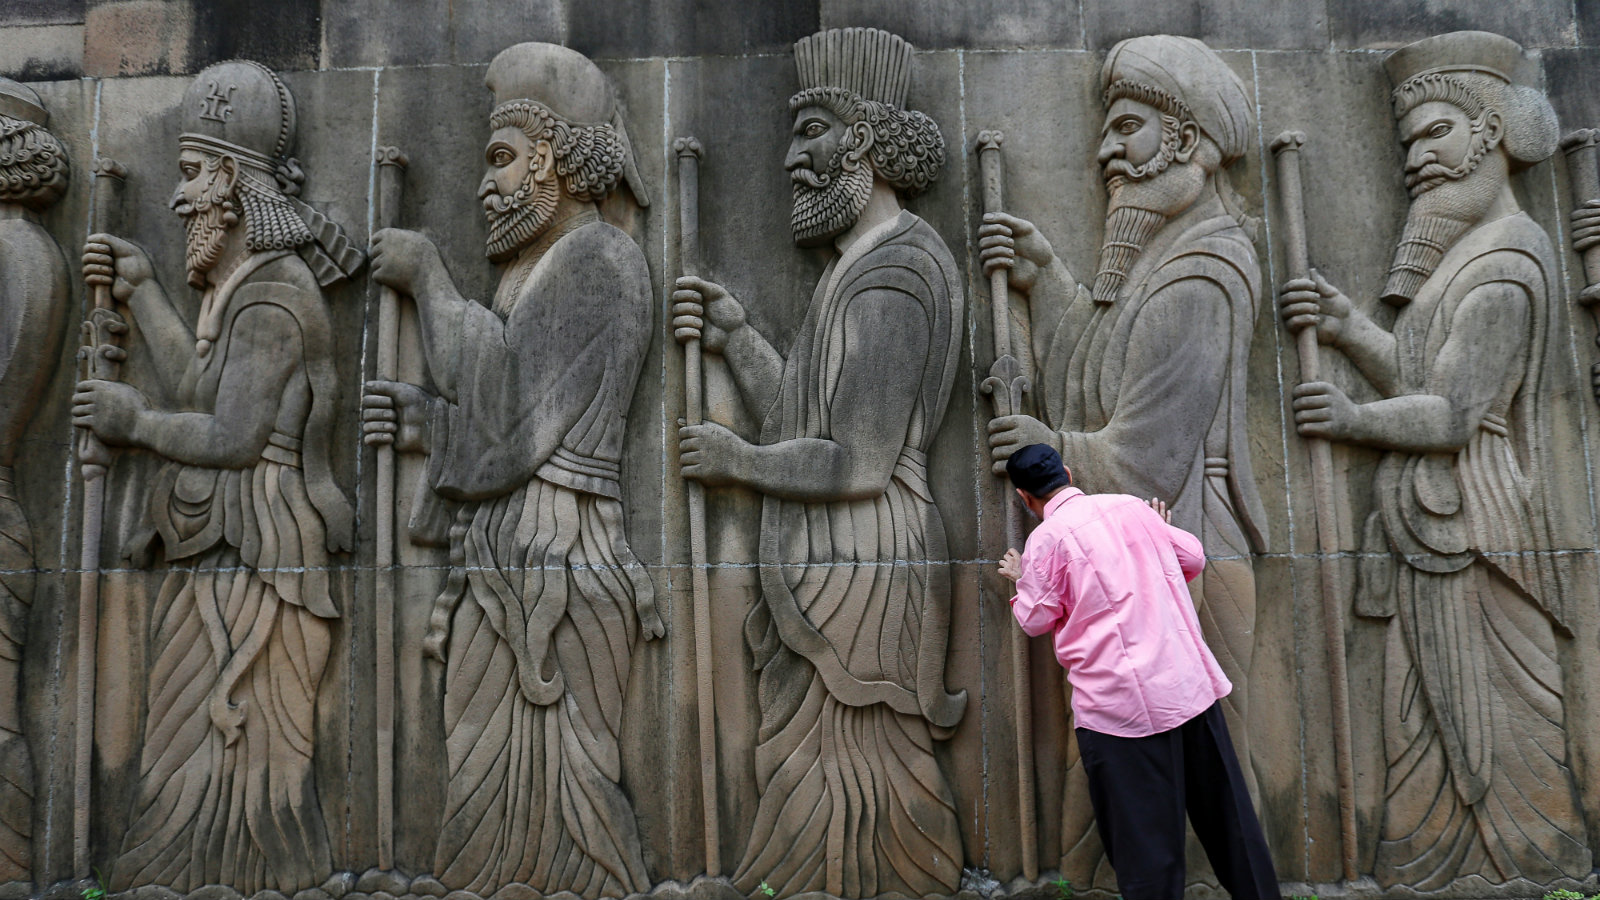 A Parsi man touches the walls of a Parsi fire temple featuring huge carvings of ancient priests during the Parsi New Year day in Mumbai, India, August 17, 2016.